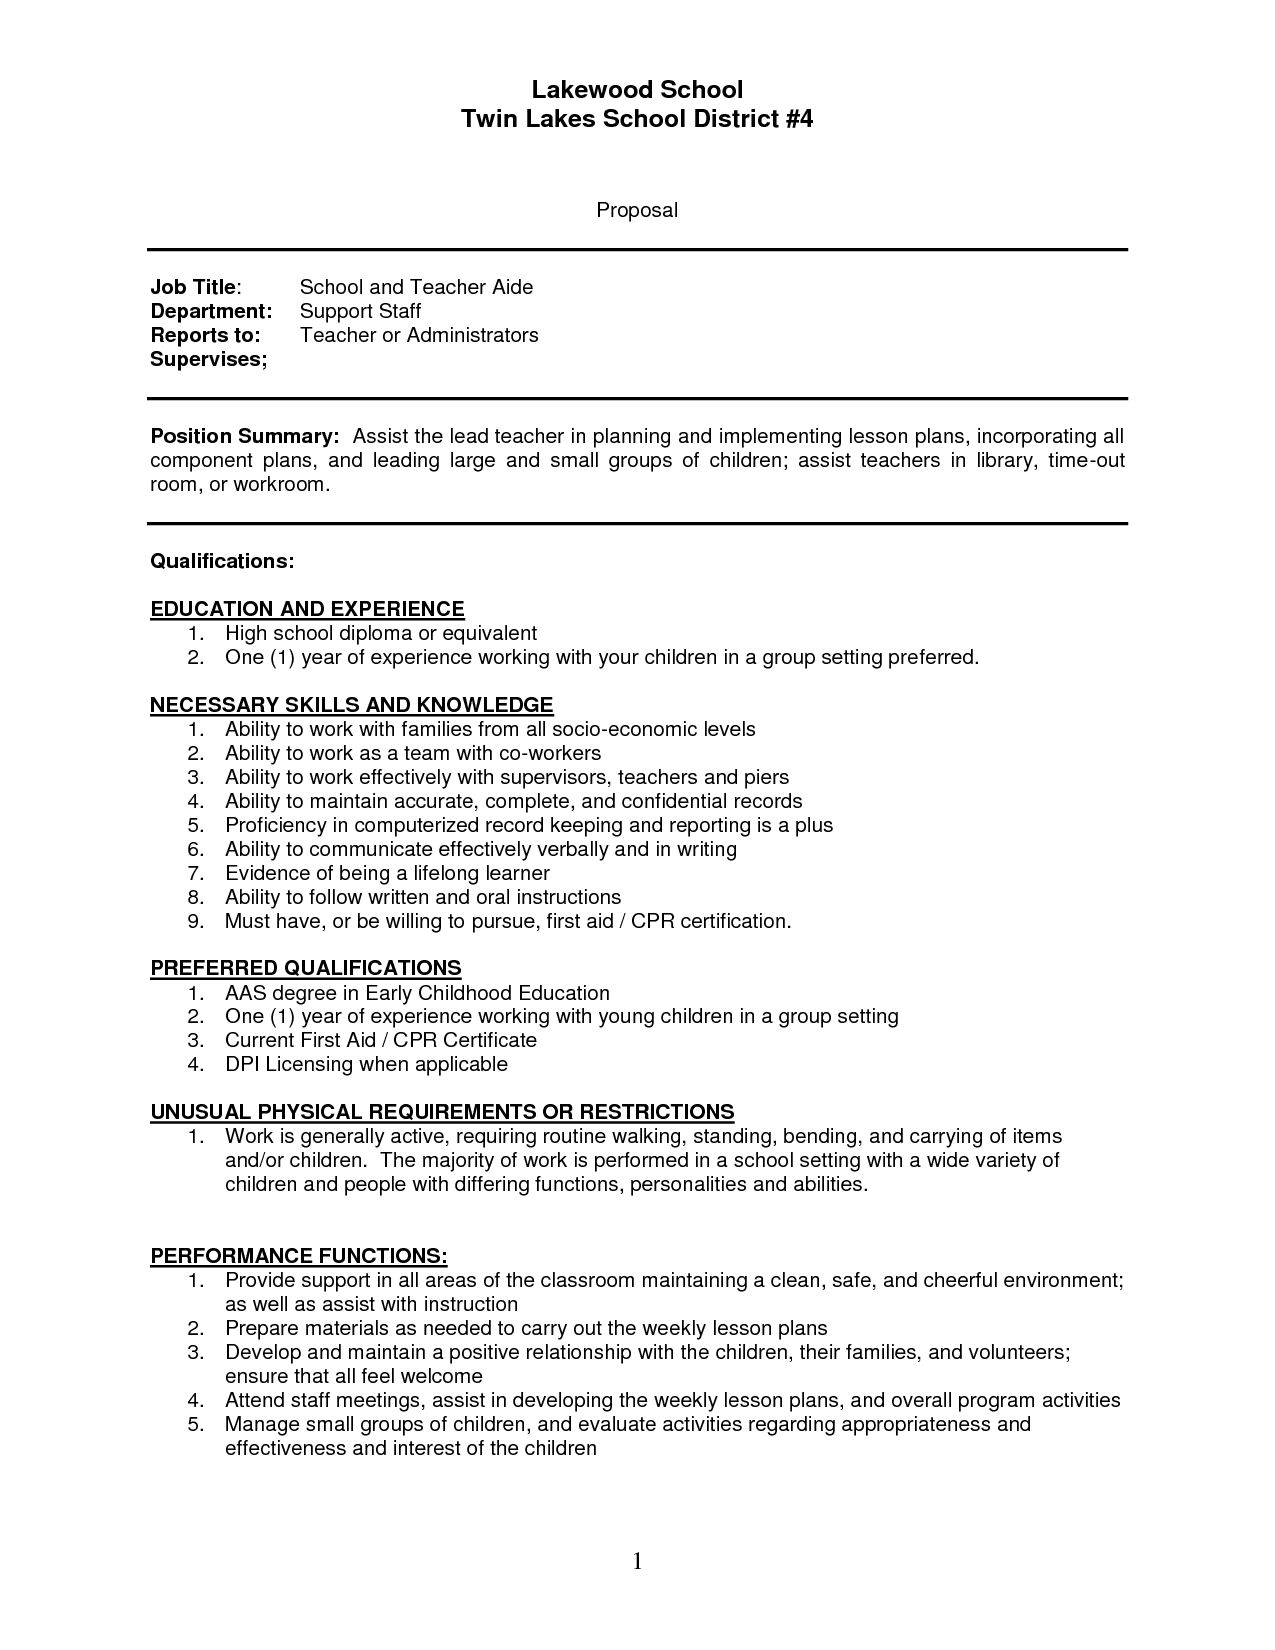 Sample Resume Teachers Aide Assistant Cover Letter Teacher Sap Consultant